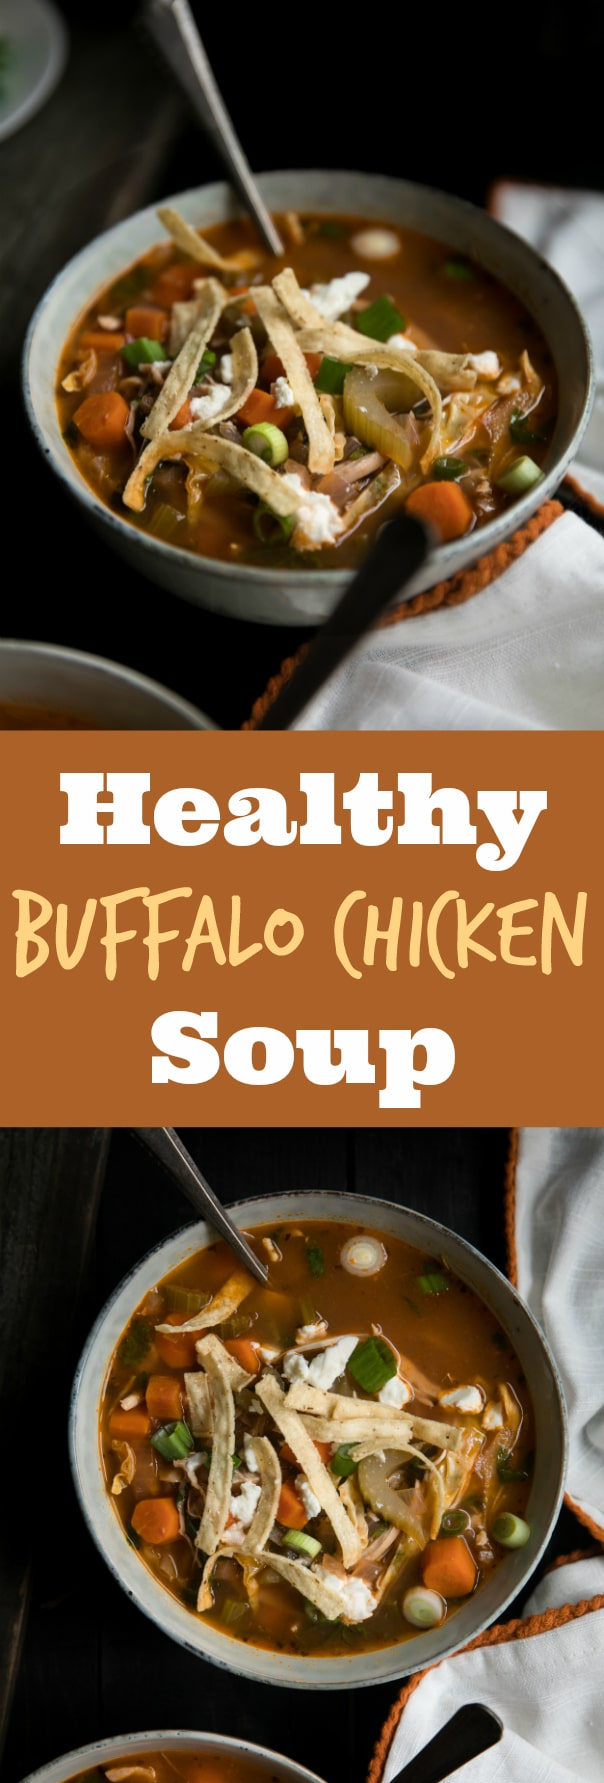 Healthy Buffalo Chicken Soup via @theforkedspoon #buffalosauce #chicken #soup #healthy #lowfat #dinner #chickensoup #buffalochicken